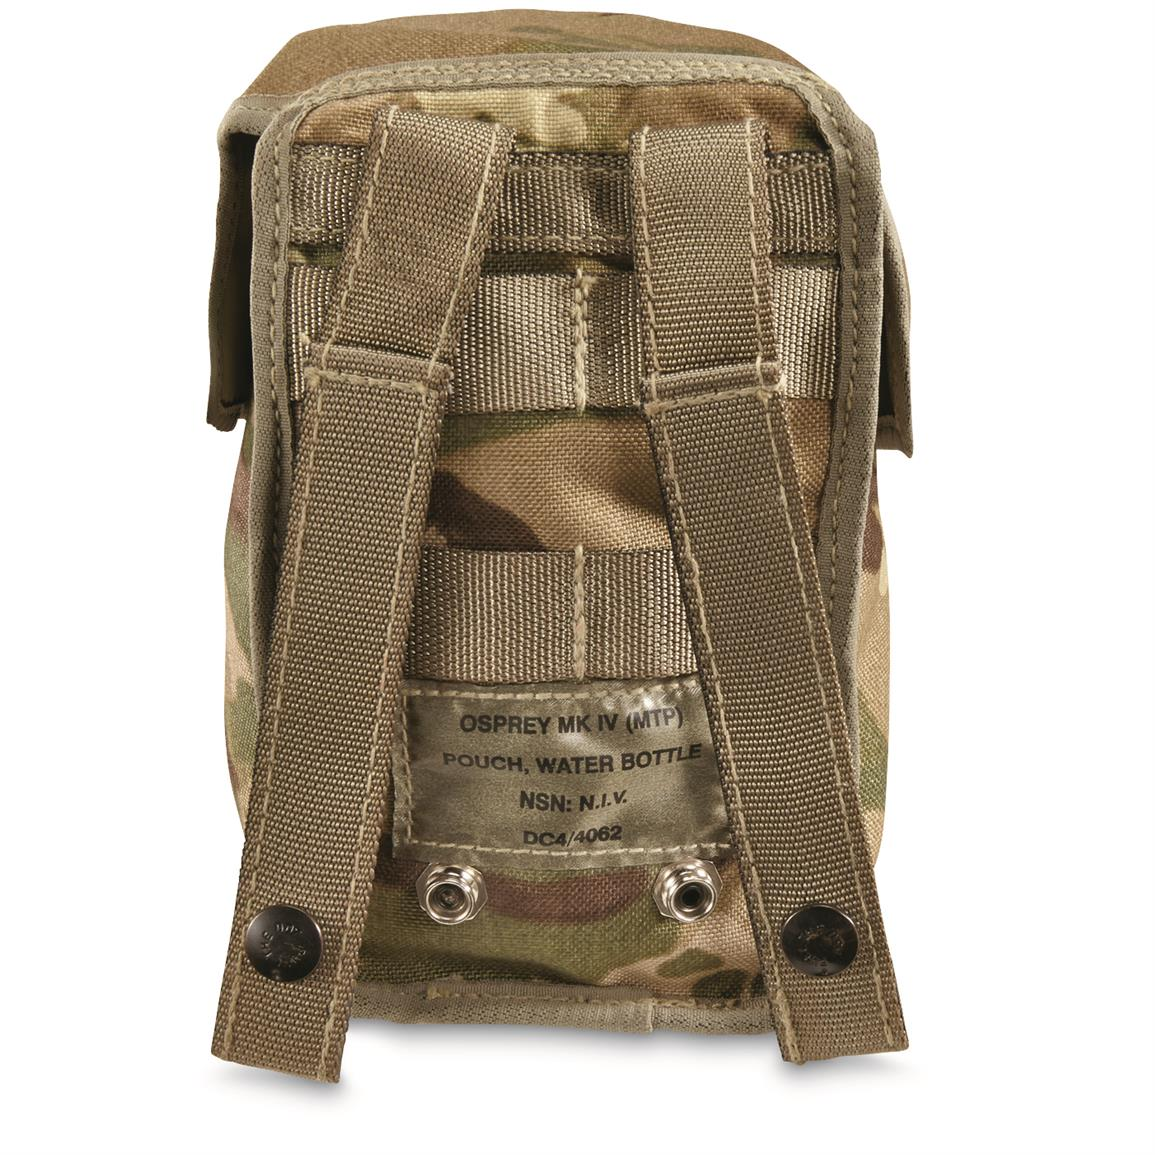 MOLLE straps on back